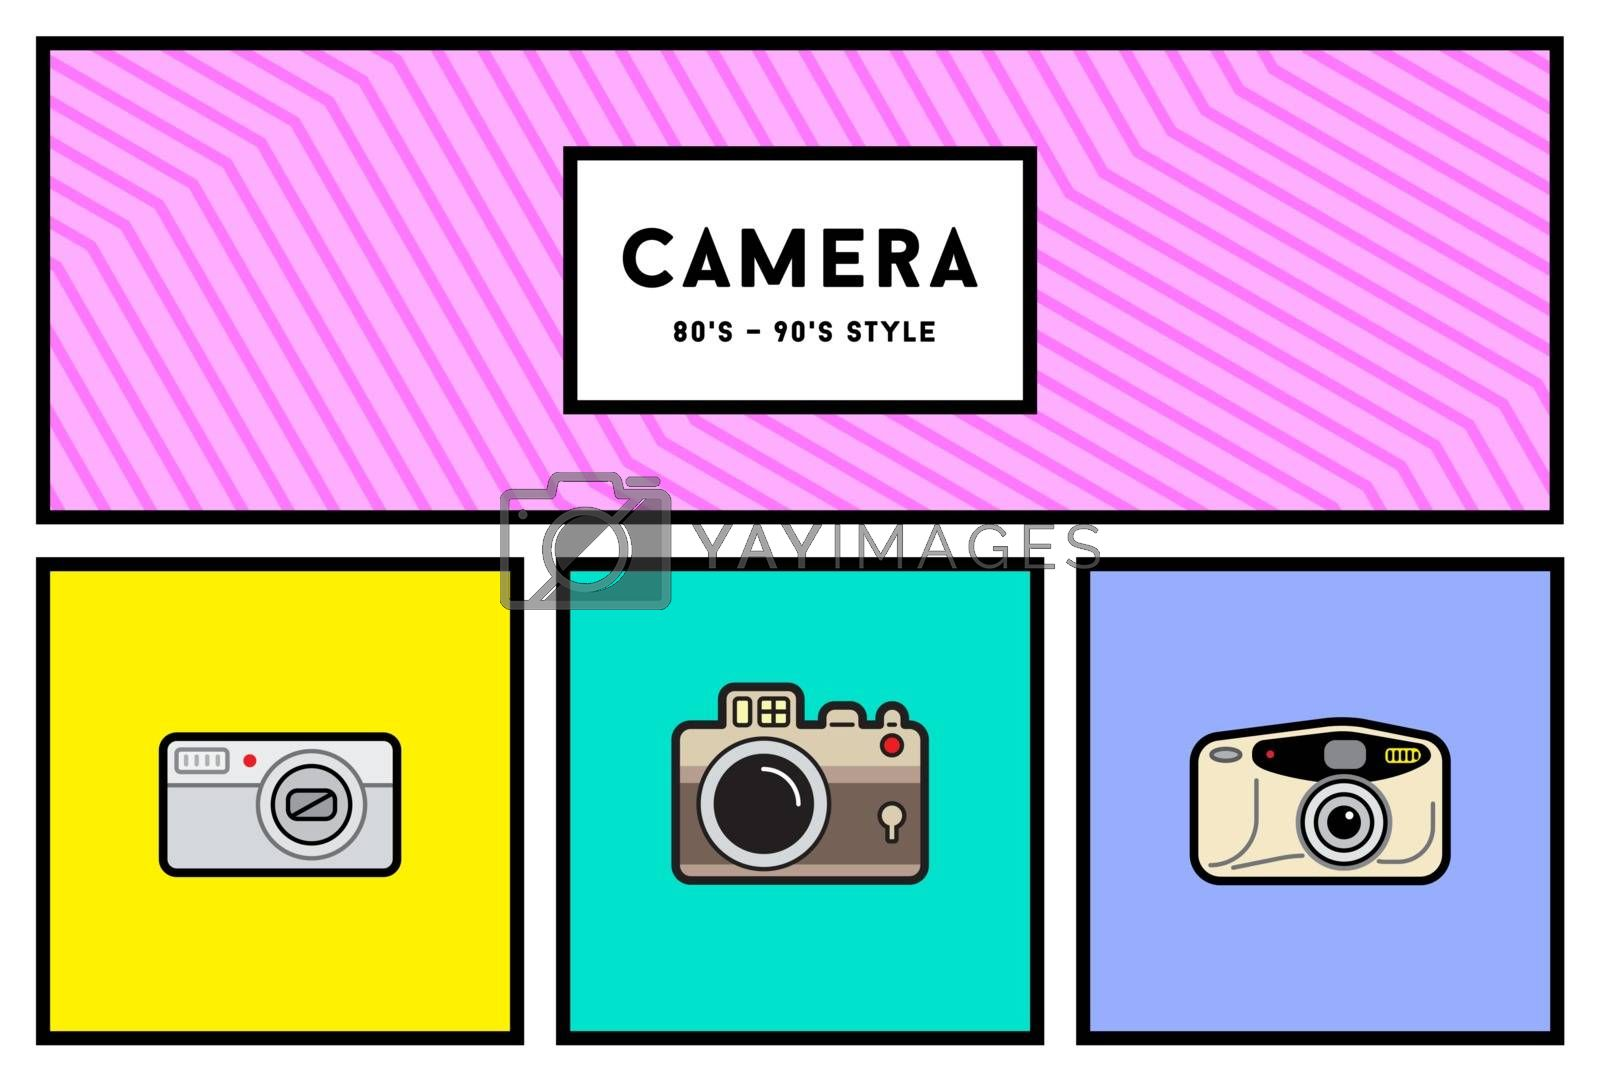 Vector 80's or 90's Stylish Photo Camera Icon Set with Retro Colors